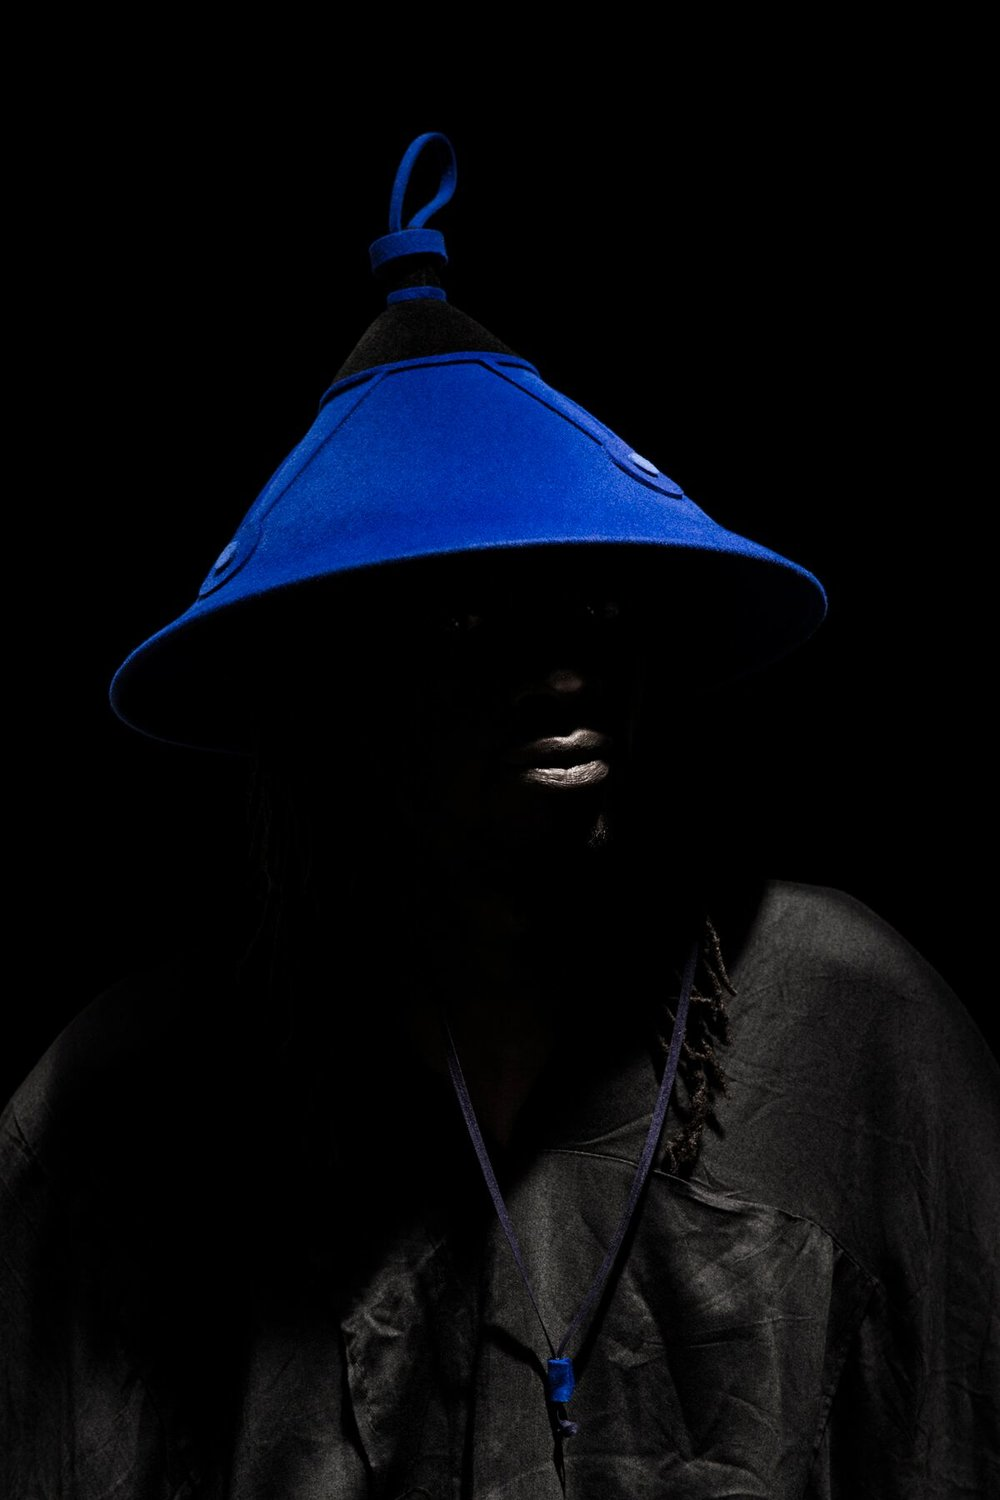 Tigande Hat - Black Background Blue Hat 1.jpg